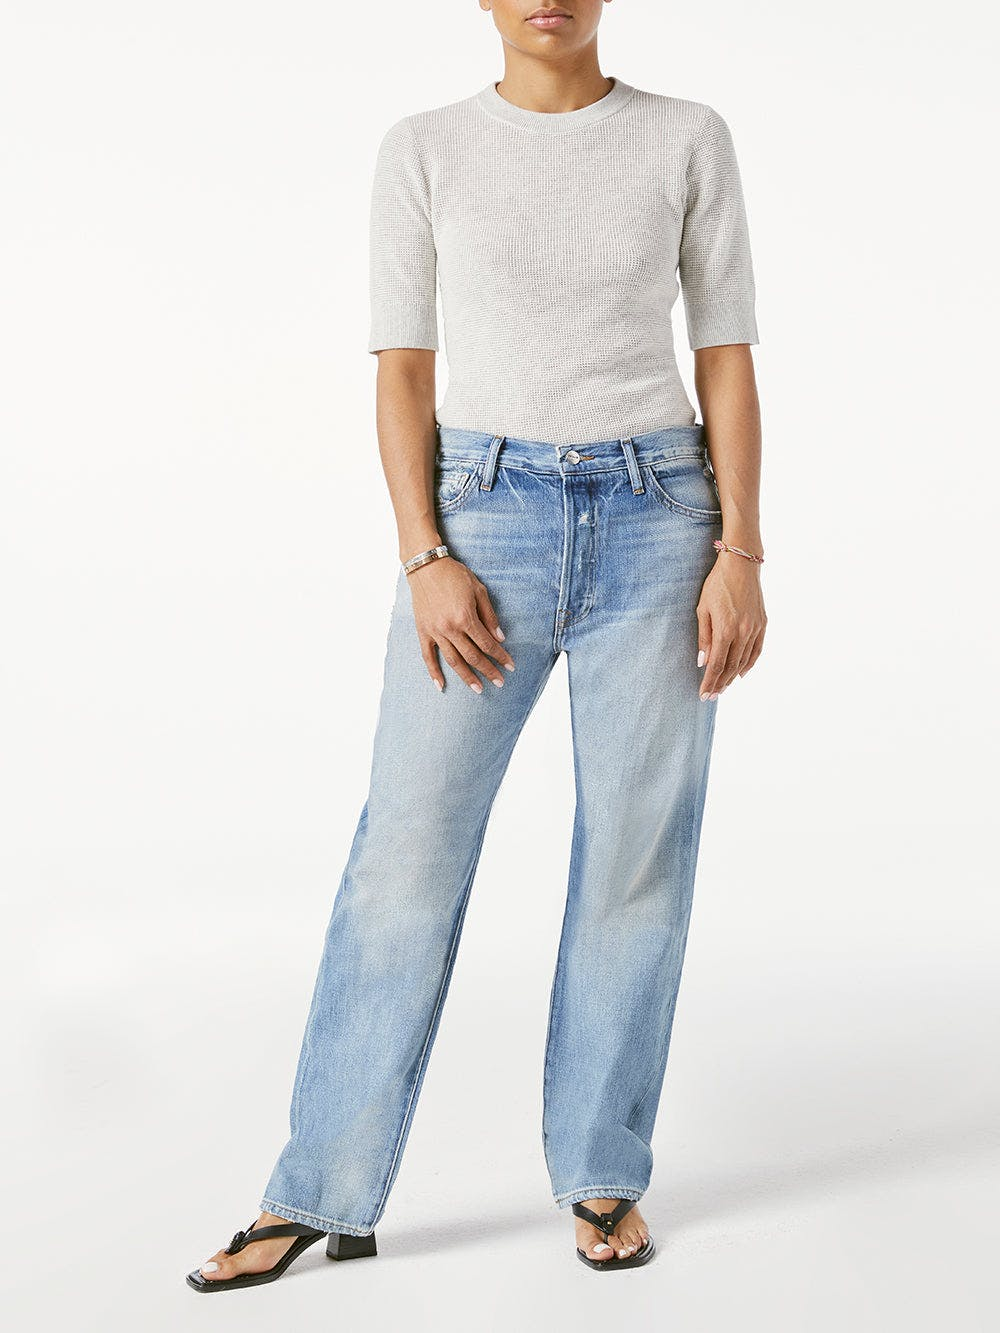 jeans front full body view 2